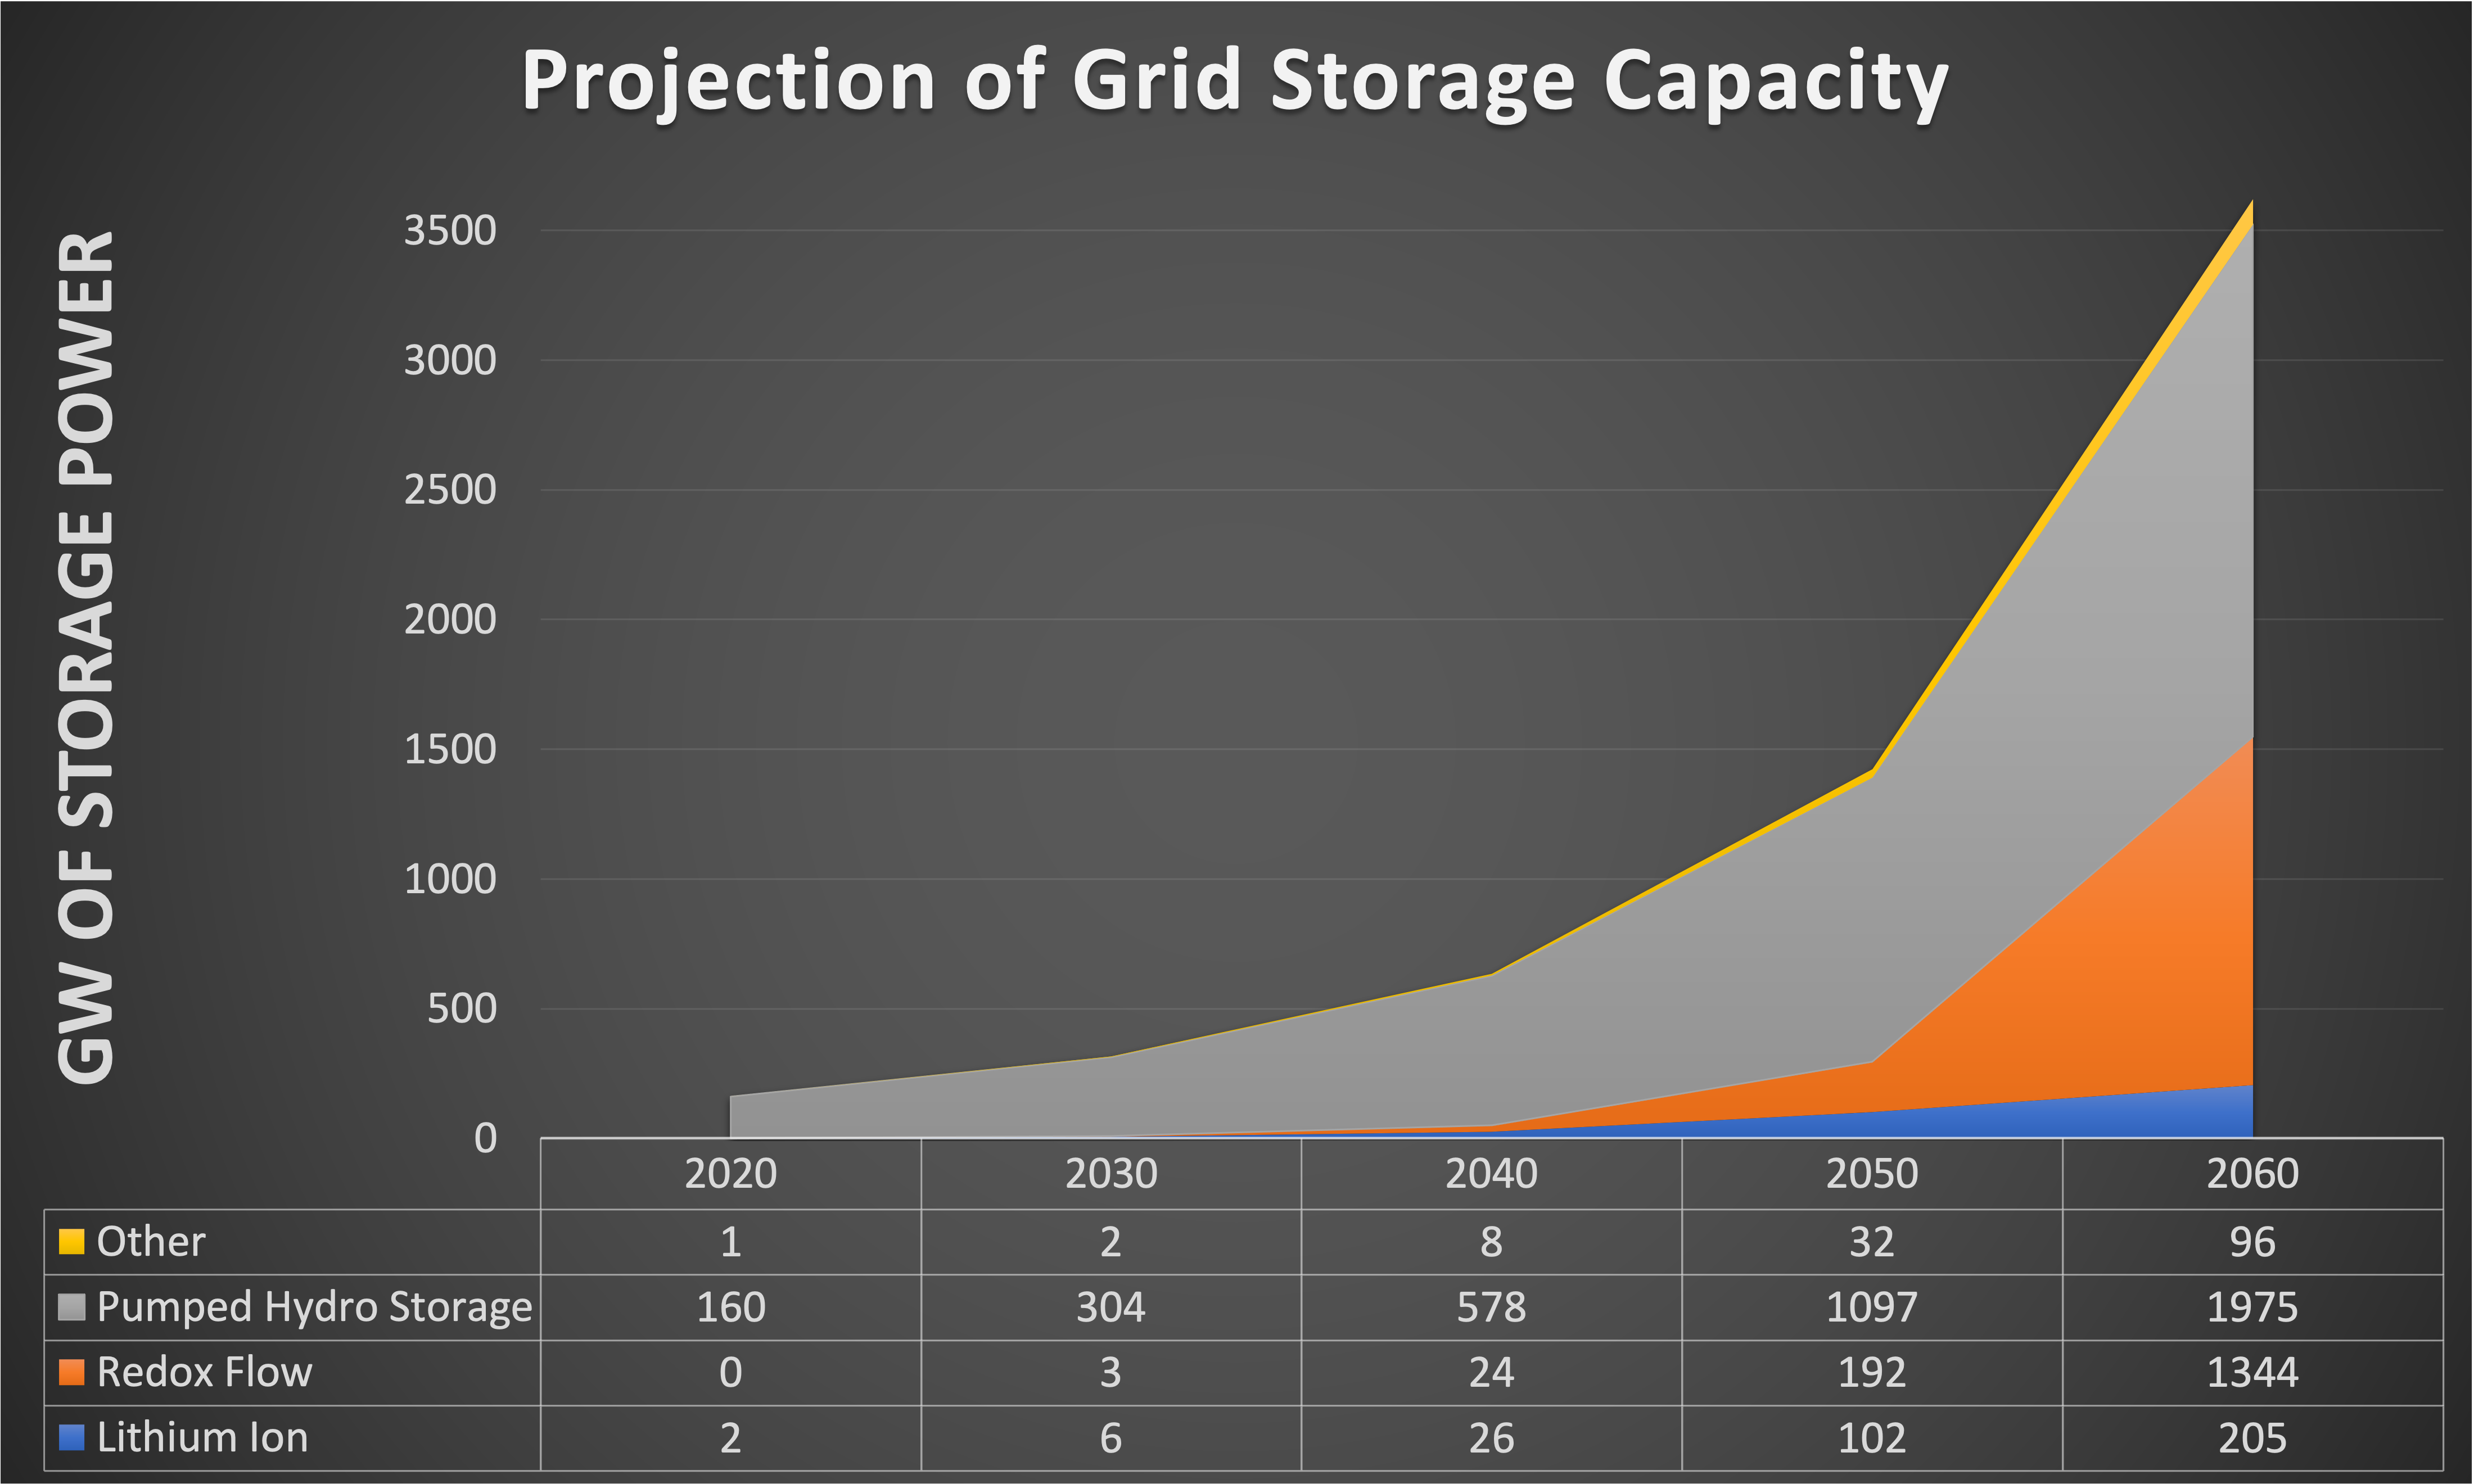 Projection of grid storage capacity through 2060